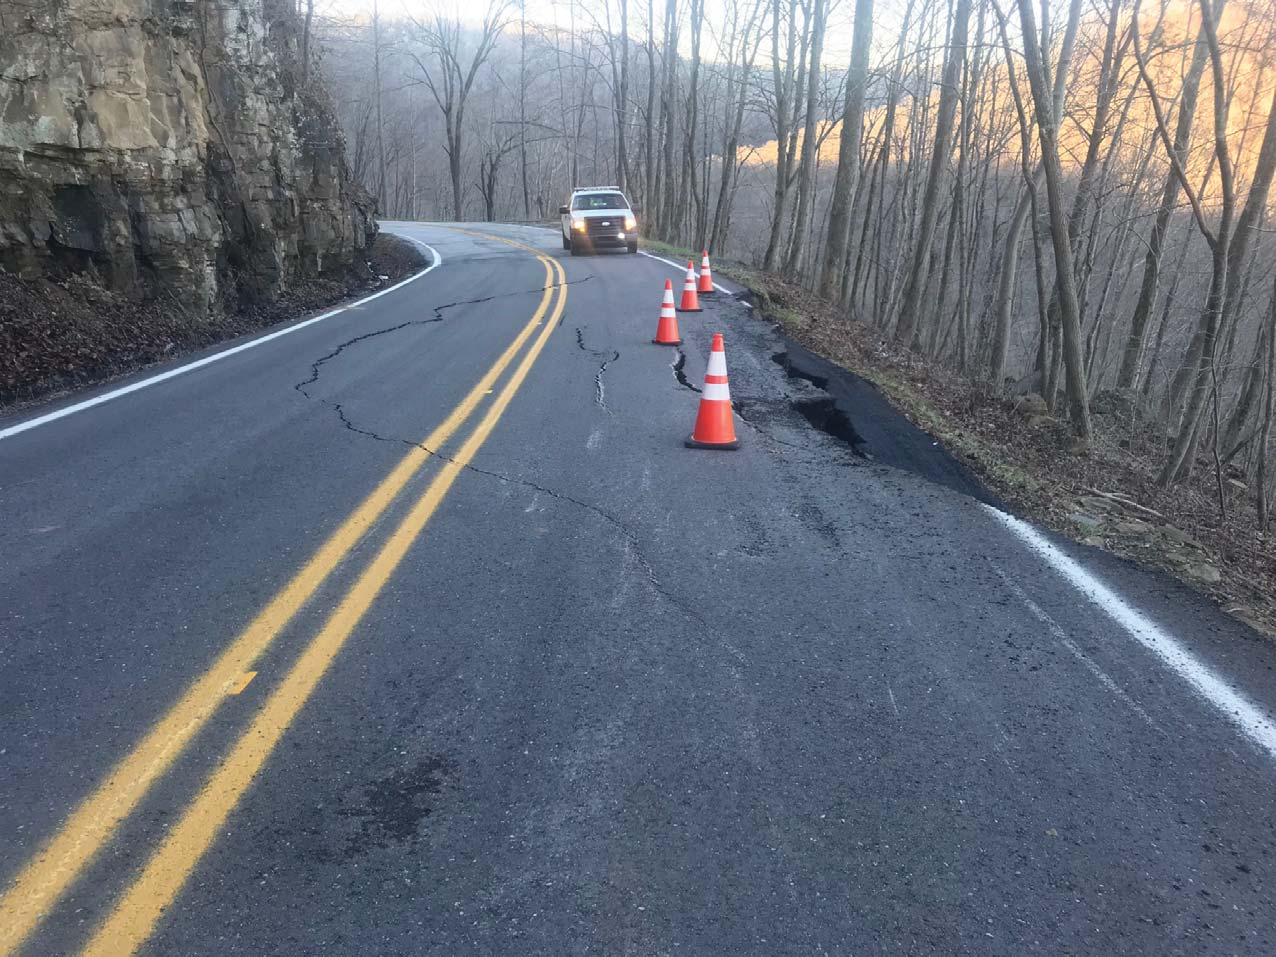 State Route 85 in Fentress County Closed at log mile 6 8 due